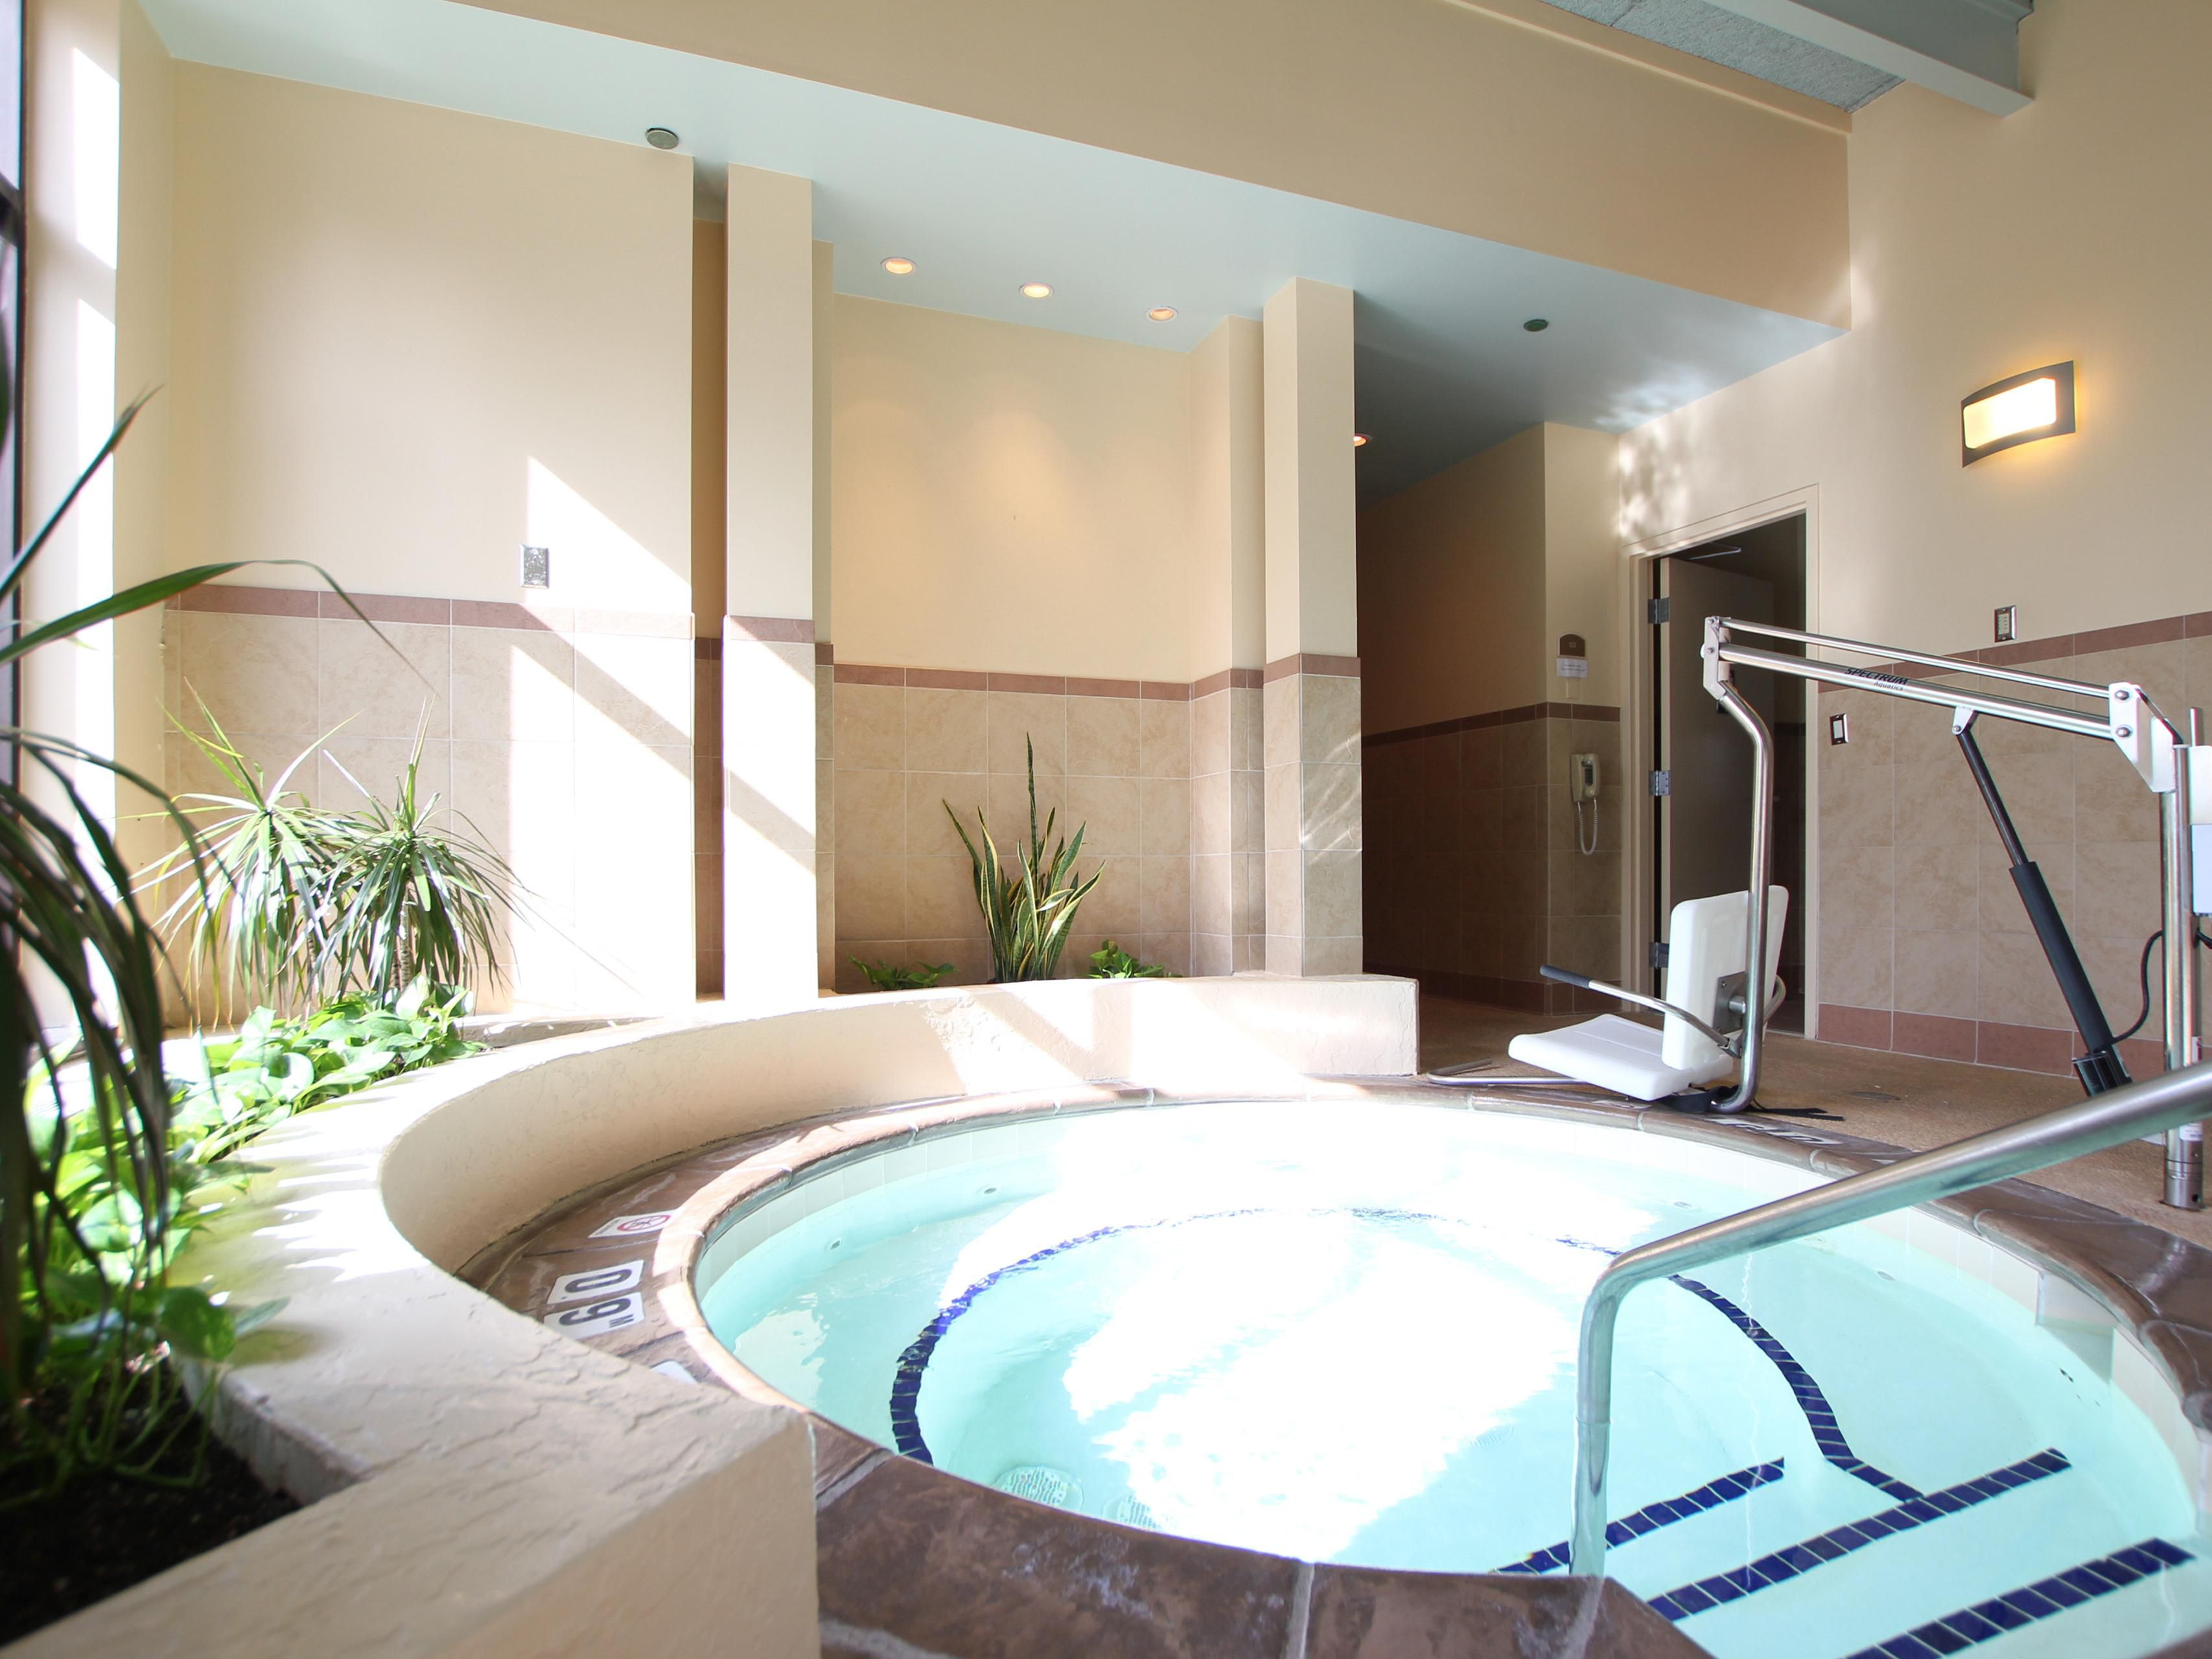 Sit back and relax in our whirlpool at the Holiday Inn Eagan hotel